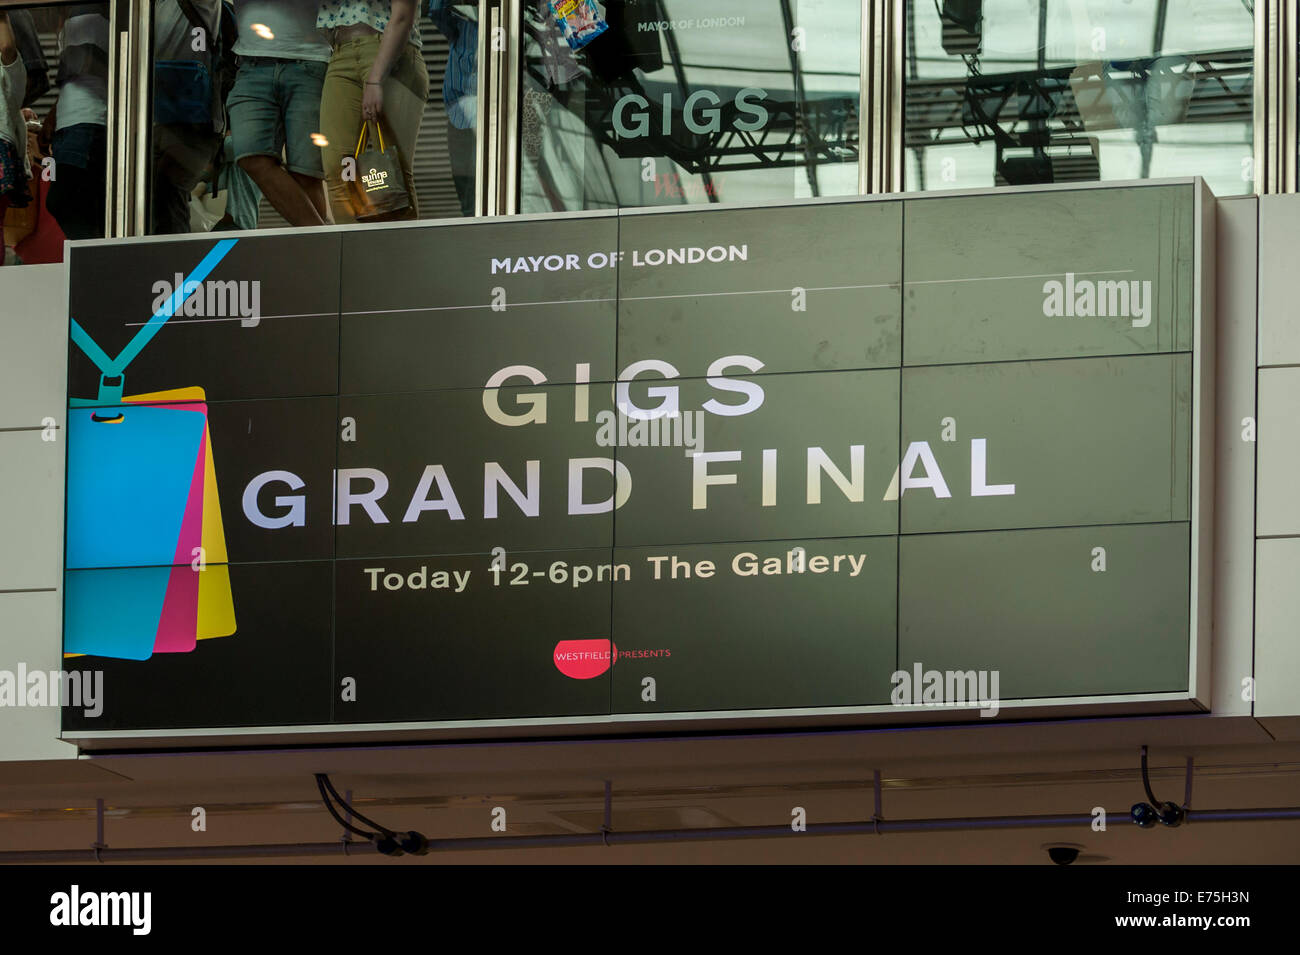 London, UK. 7th September, 2014.  Supported by the Mayor of London, The Grand Final of Gigs Big Busk, the UK's biggest street music competition, took place at Westfield, Stratford in front of huge audiences. Credit:  Stephen Chung/Alamy Live News Stock Photo